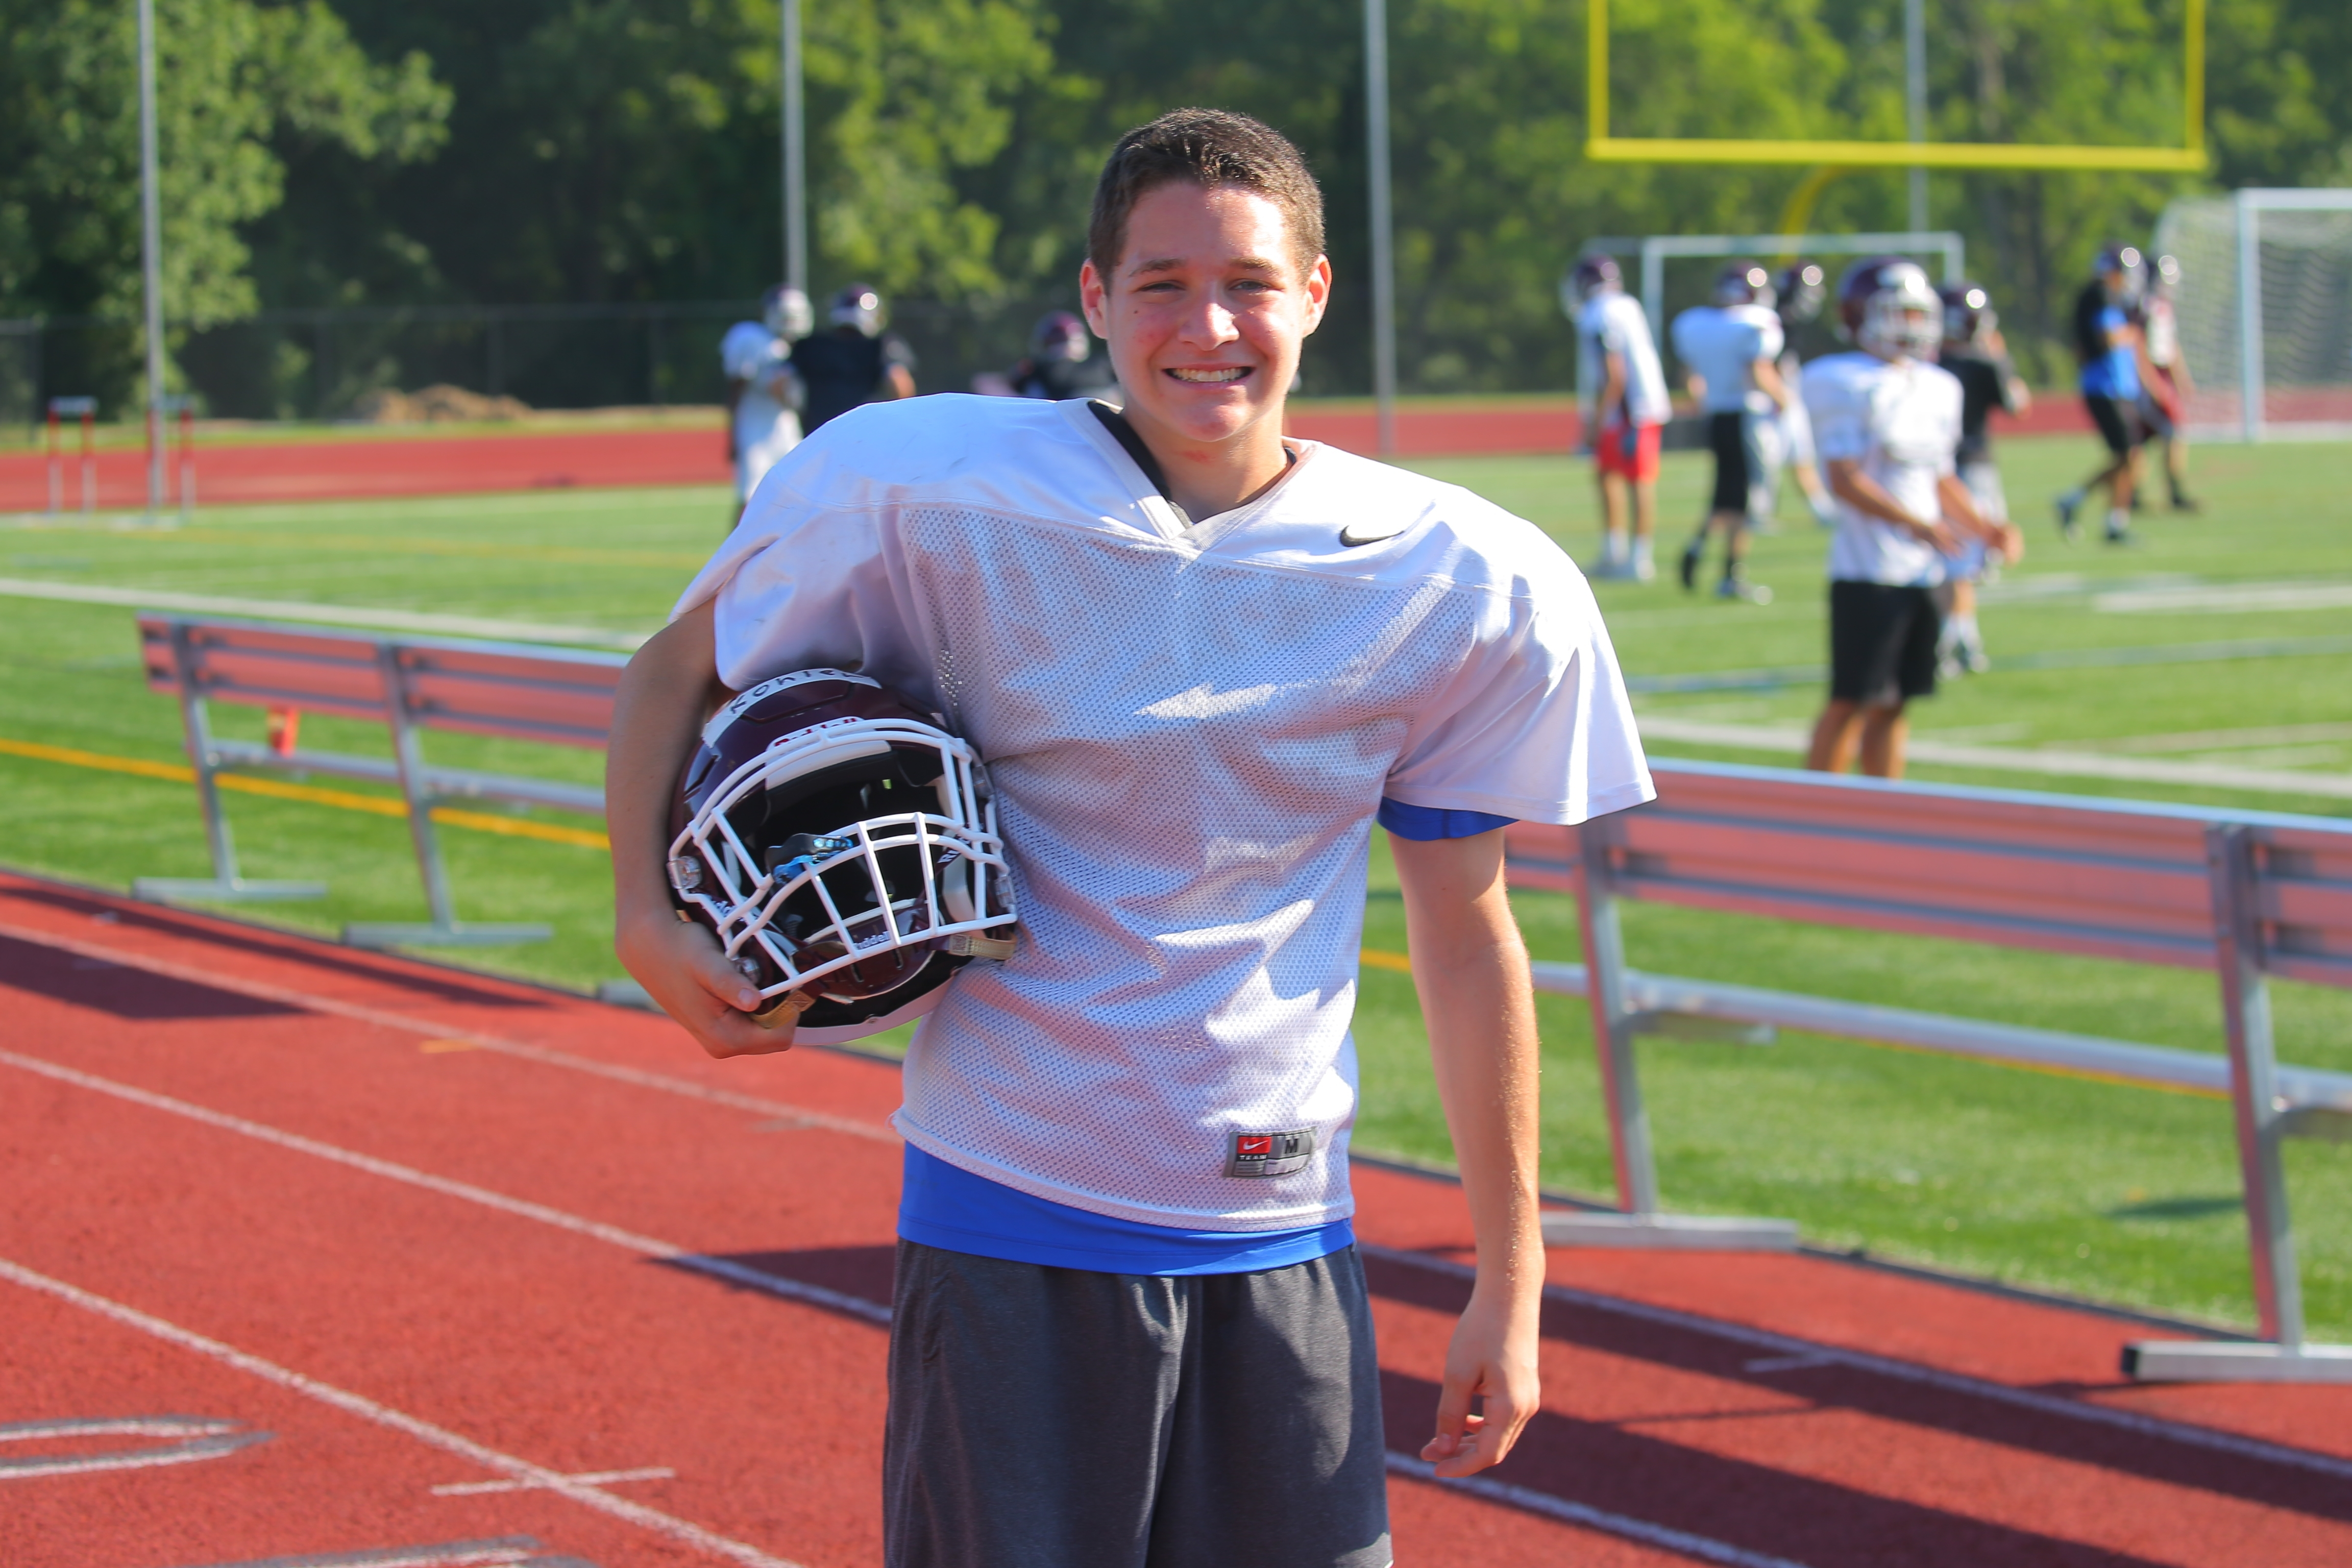 Jacob Kohler, a receiver on the Orchard Park football team, has been ruled ineligible to play because he's a fifth-year senior. Kohler, who was diagnosed with autism as a child, is appealing to the state Department of Education to overturn the Section VI ruling . Kohler is shown before  practice at the Orchard Park High School athletic field in Orchard Park, N.Y. on Friday Aug. 19, 2016.  (John Hickey/Buffalo News)